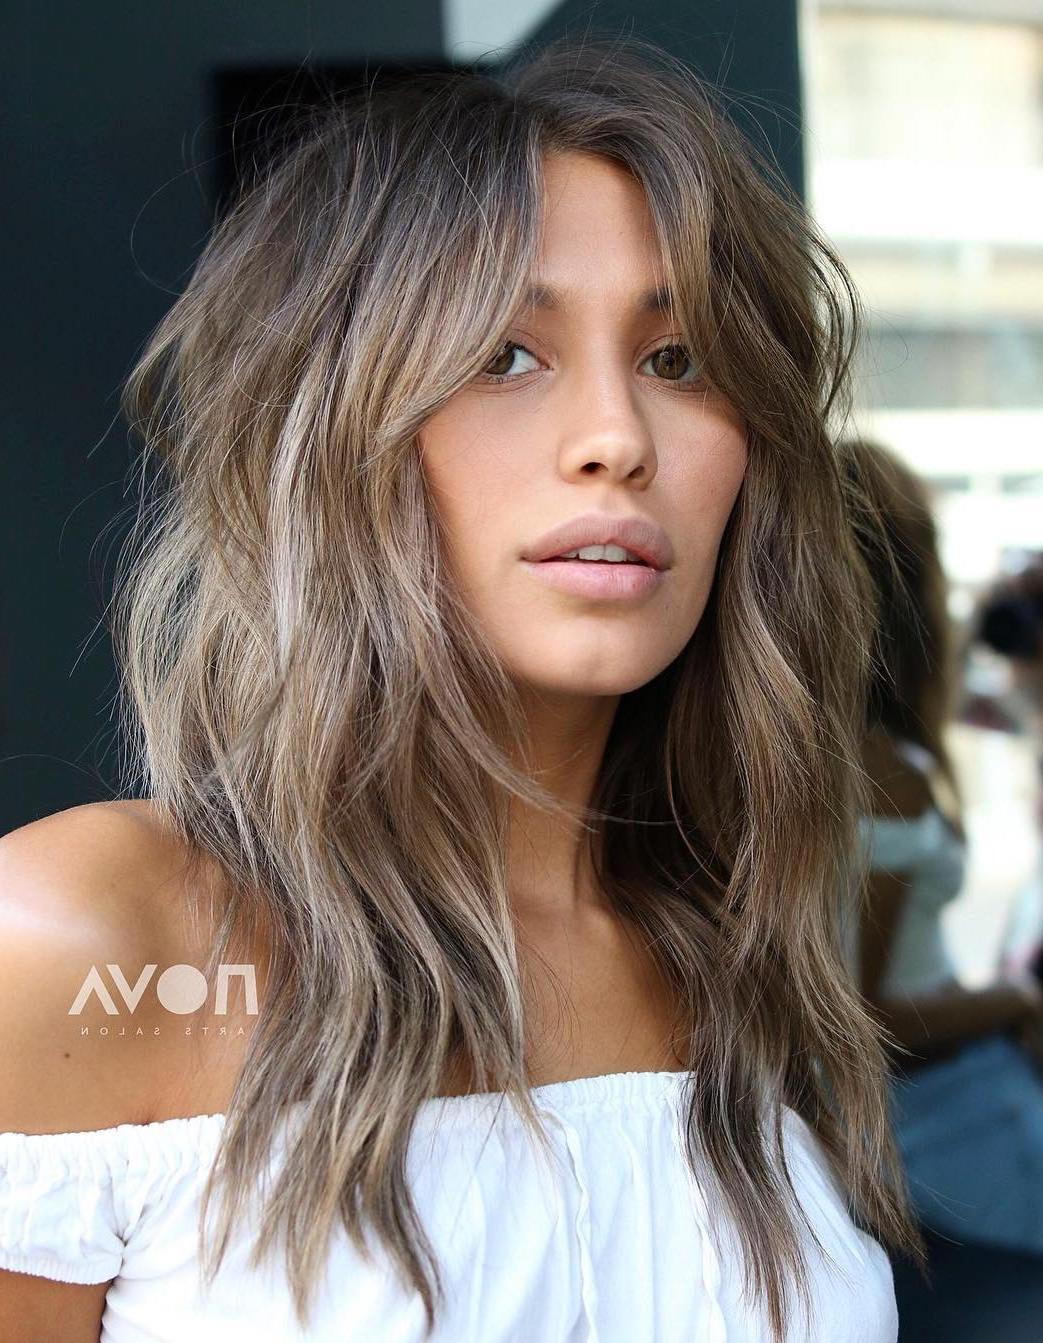 Best And Newest Sharp Shag Haircuts With Razored Layers Throughout 40 Modern Shag Haircuts For Women To Make A Splash (View 6 of 20)